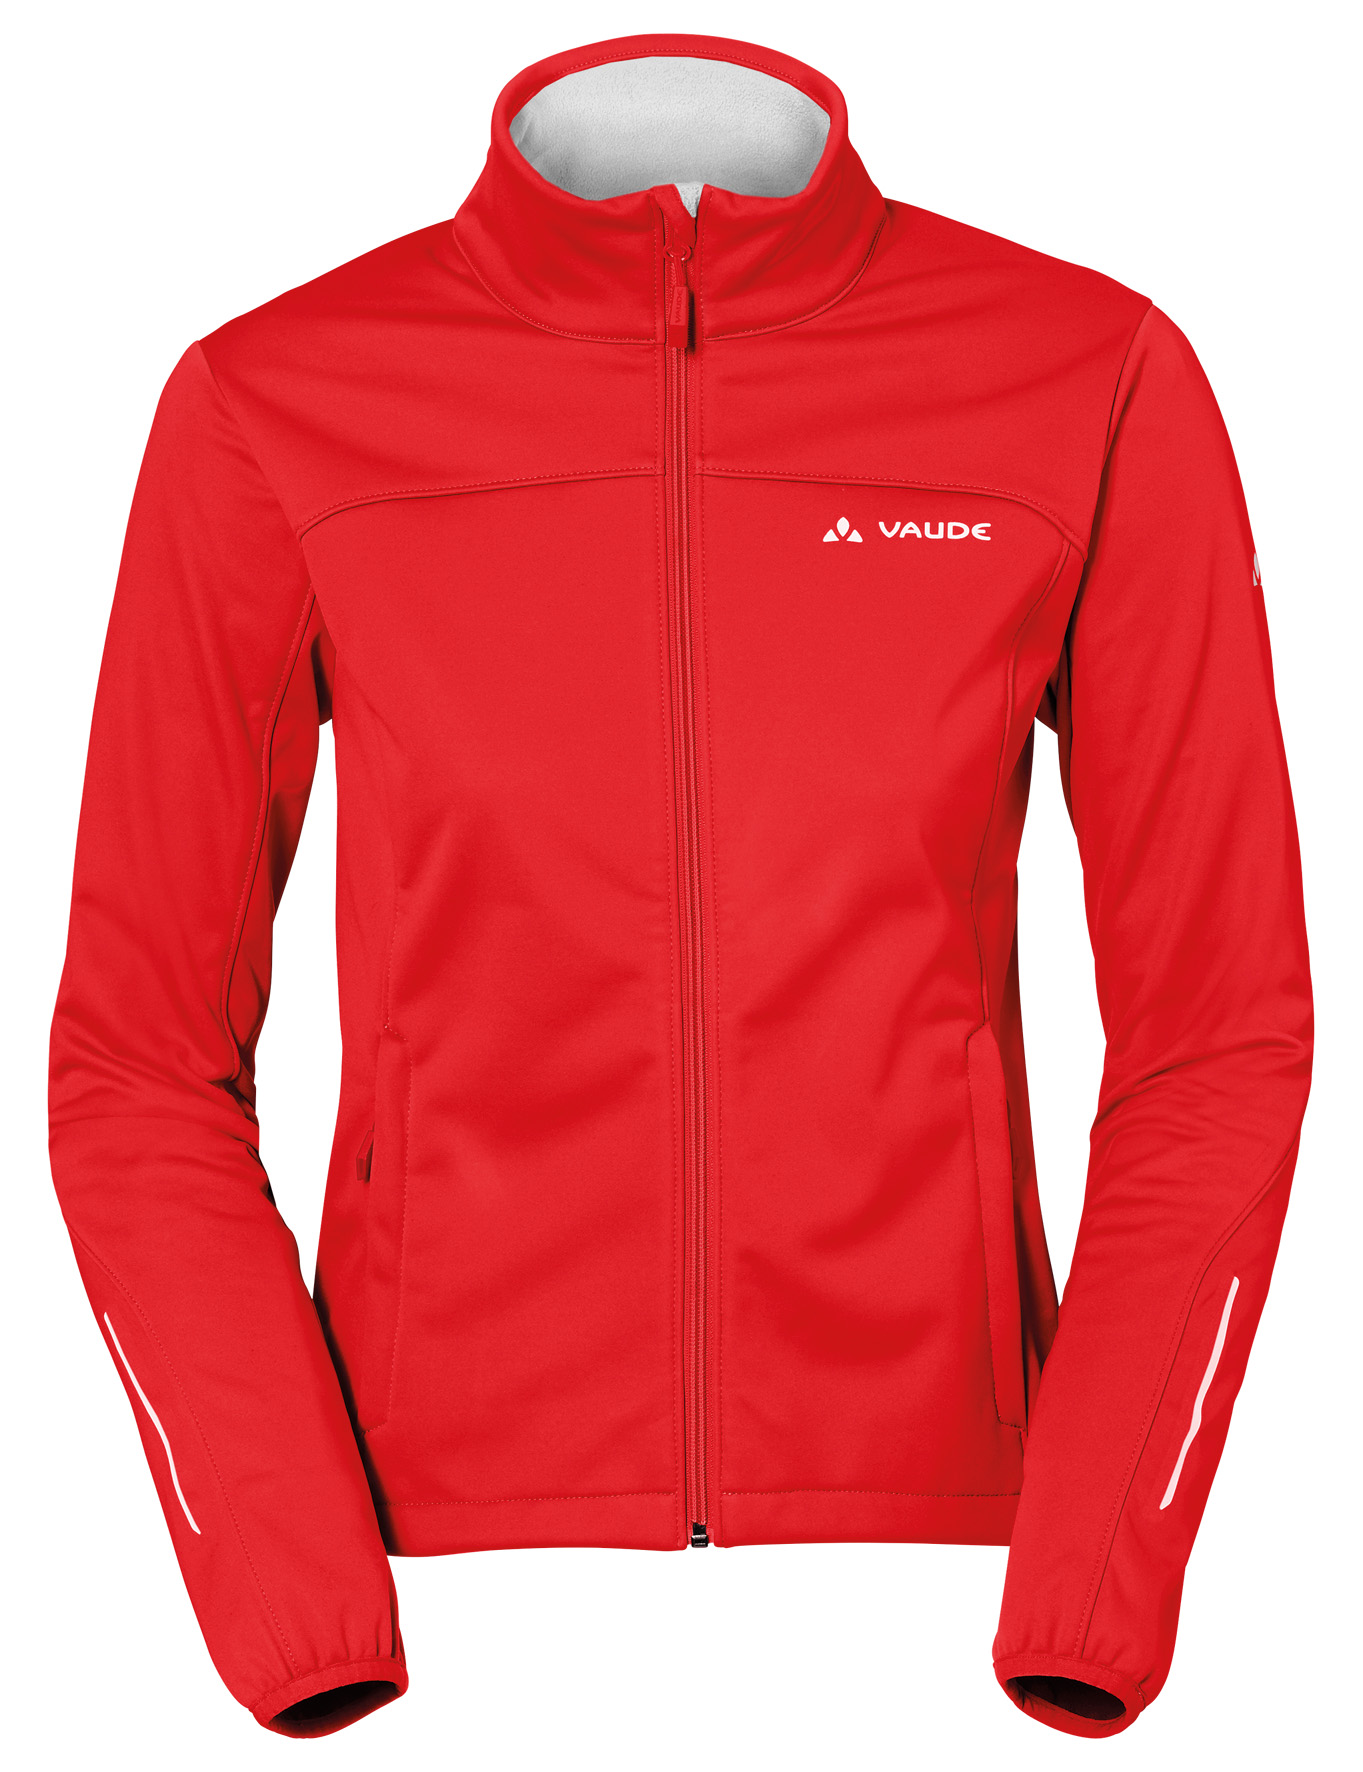 VAUDE Women´s Wintry Jacket III flame Größe 38 - schneider-sports